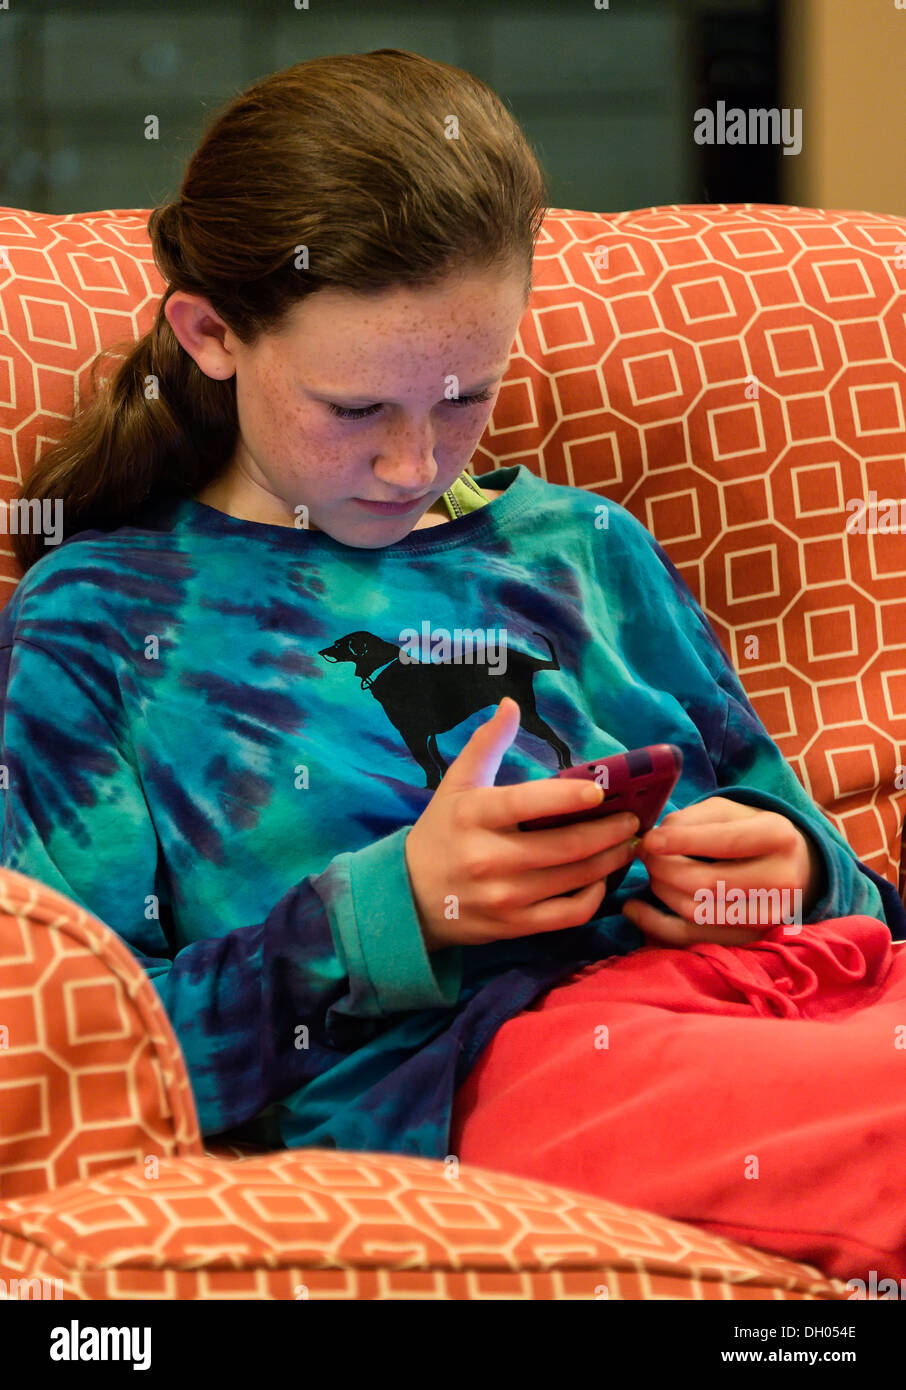 Twelve year old girl reading a text message on her mobile phone device. - Stock Image